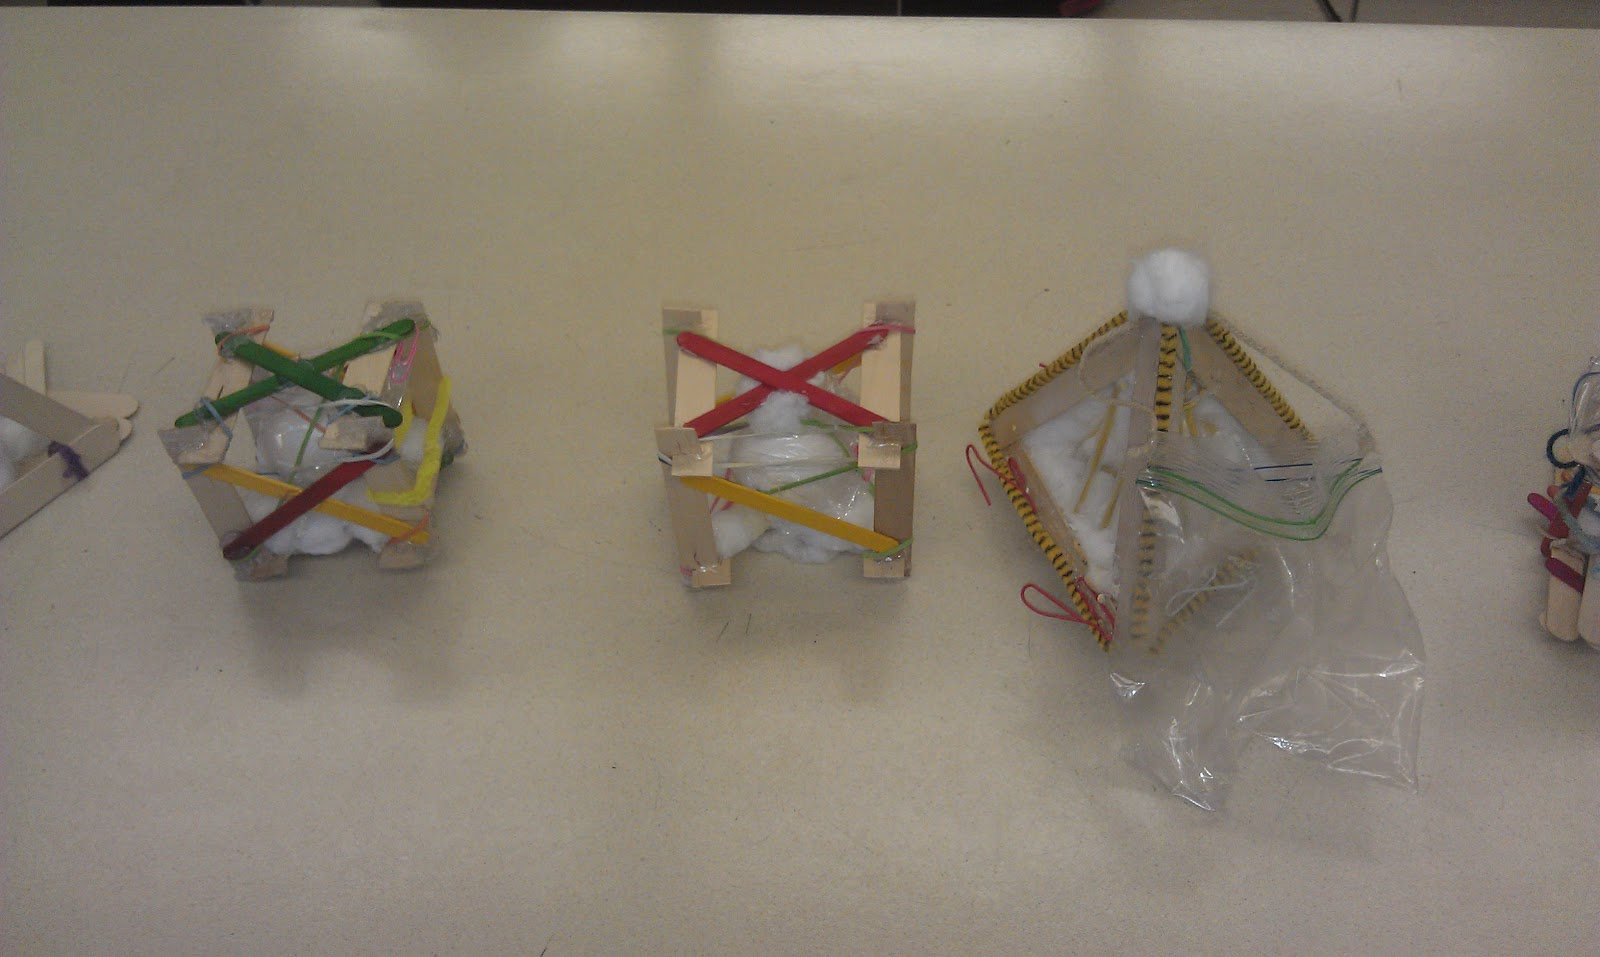 egg drop project with straws Egg drop projects are awesome for encouraging children to think and problem solve ever since our last egg drop project materials for christmas egg drop project christmas straws tissue paper wrapping paper scraps bows ribbon eggnog containers garland tinsel.